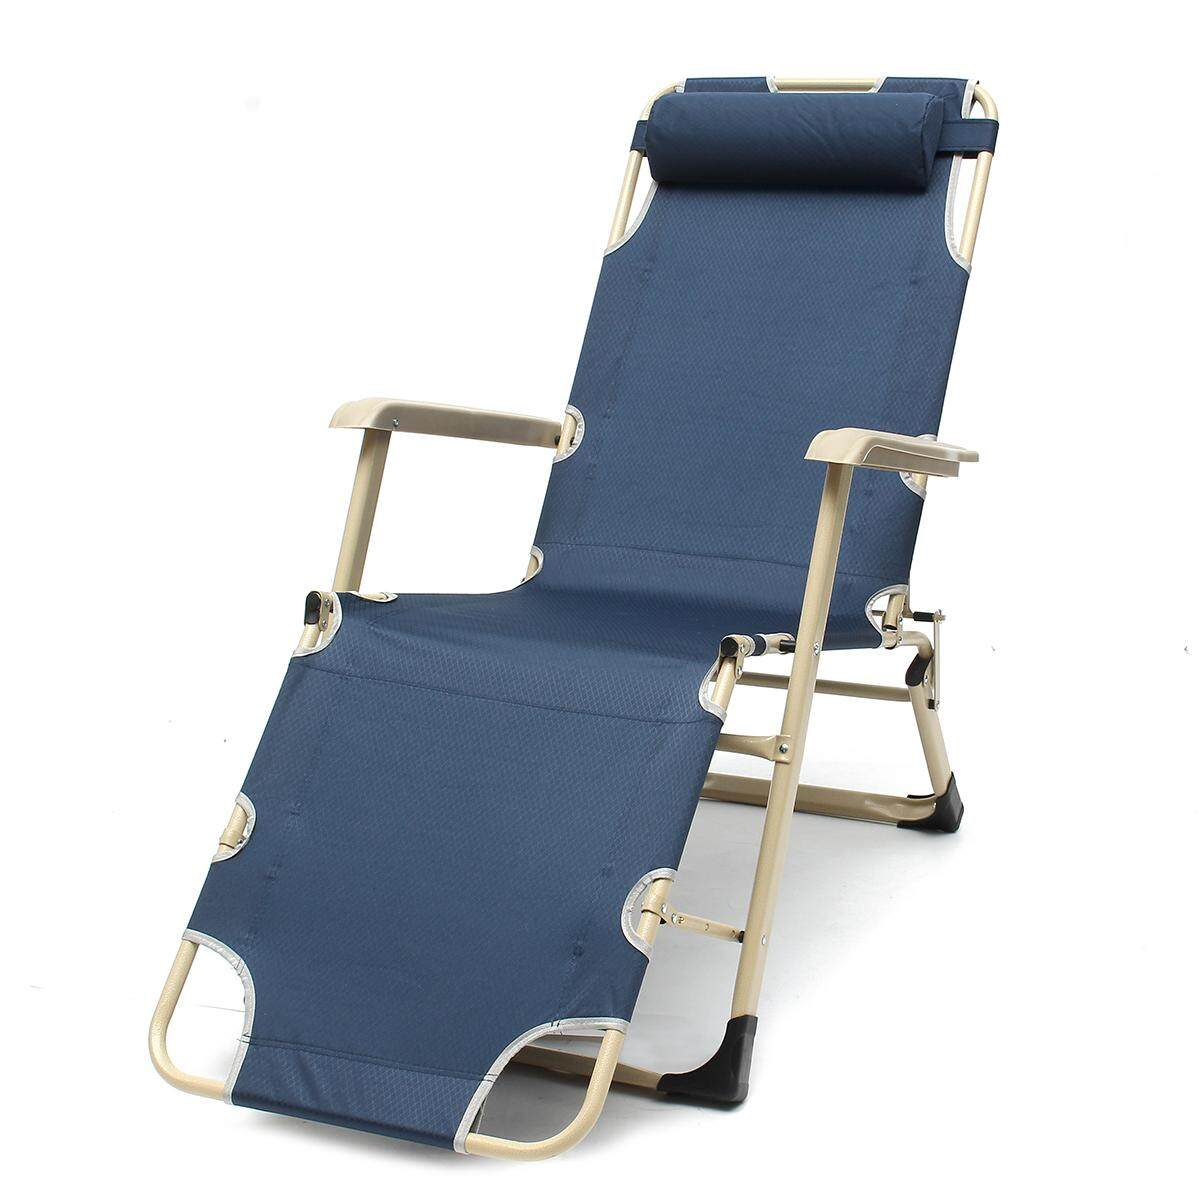 Reclining Deck Lounge Sun Beach Chair Outdoor Folding Camping Tanning Pool Navy with Suede cotton pad